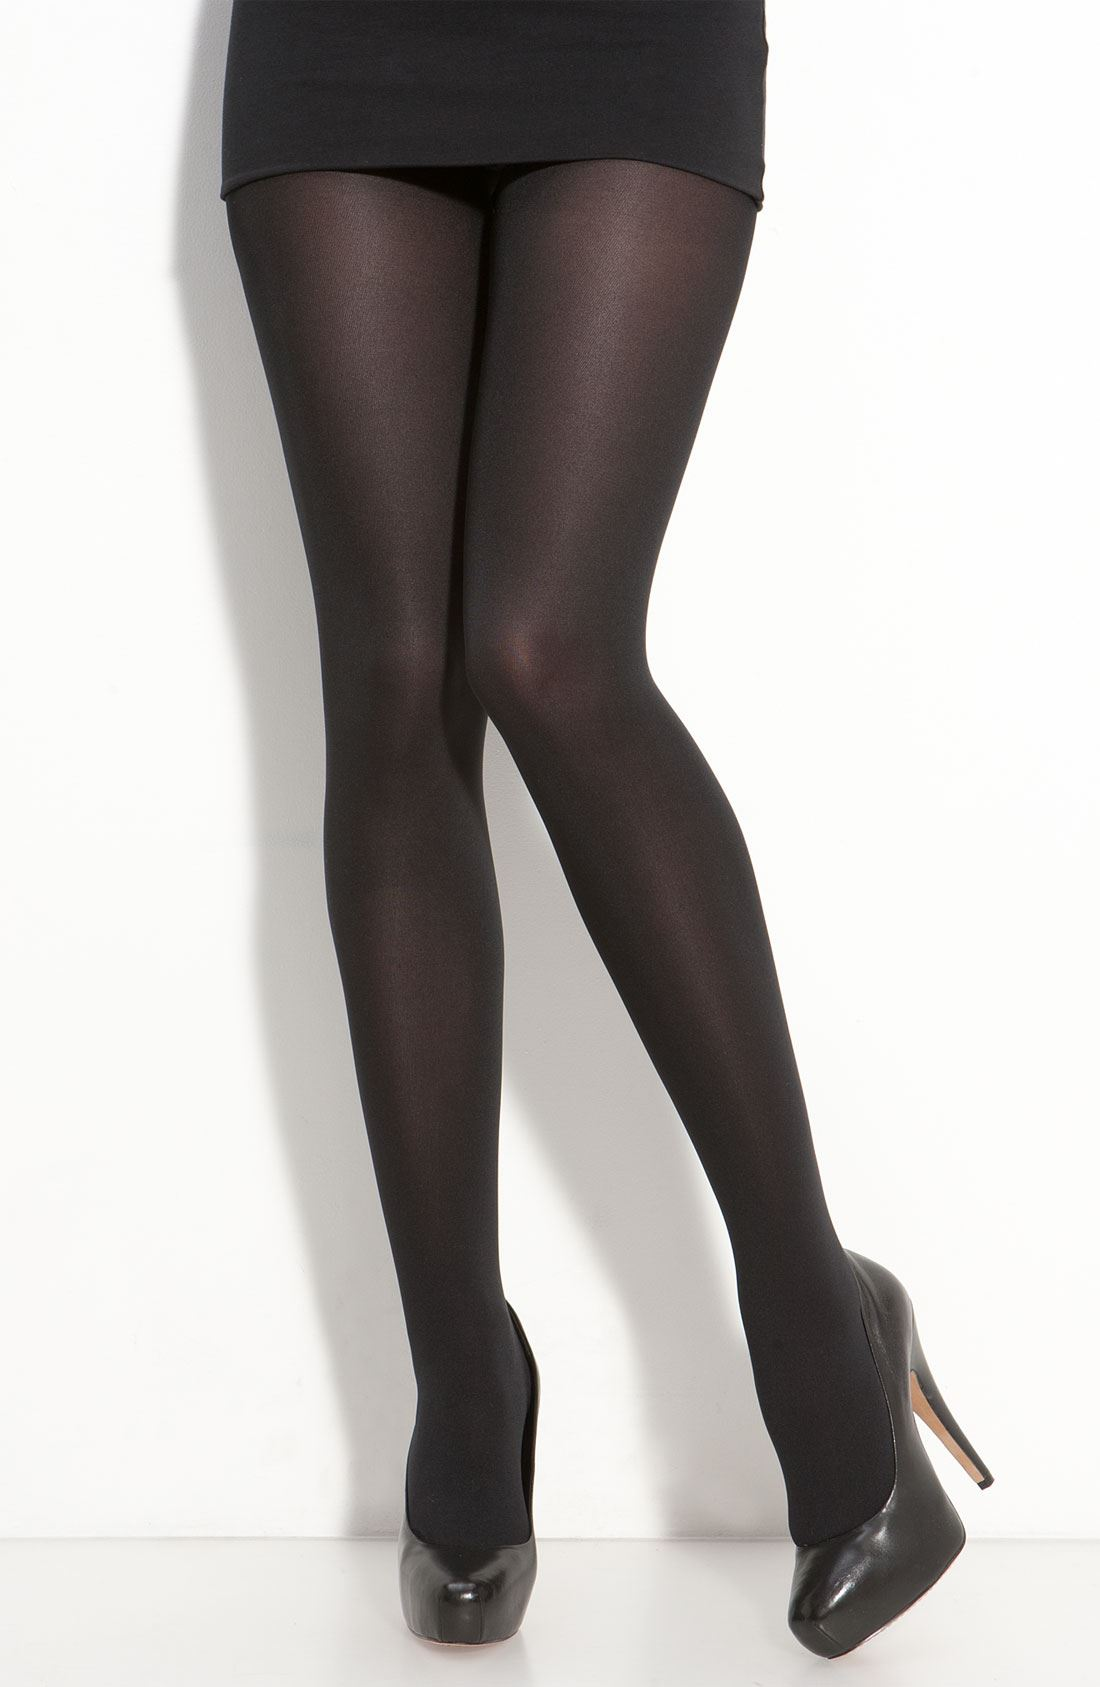 46f20e3447174 Pretty Polly 200 Denier Thermal Fleecy Opaque Extremely Soft Tights Collant